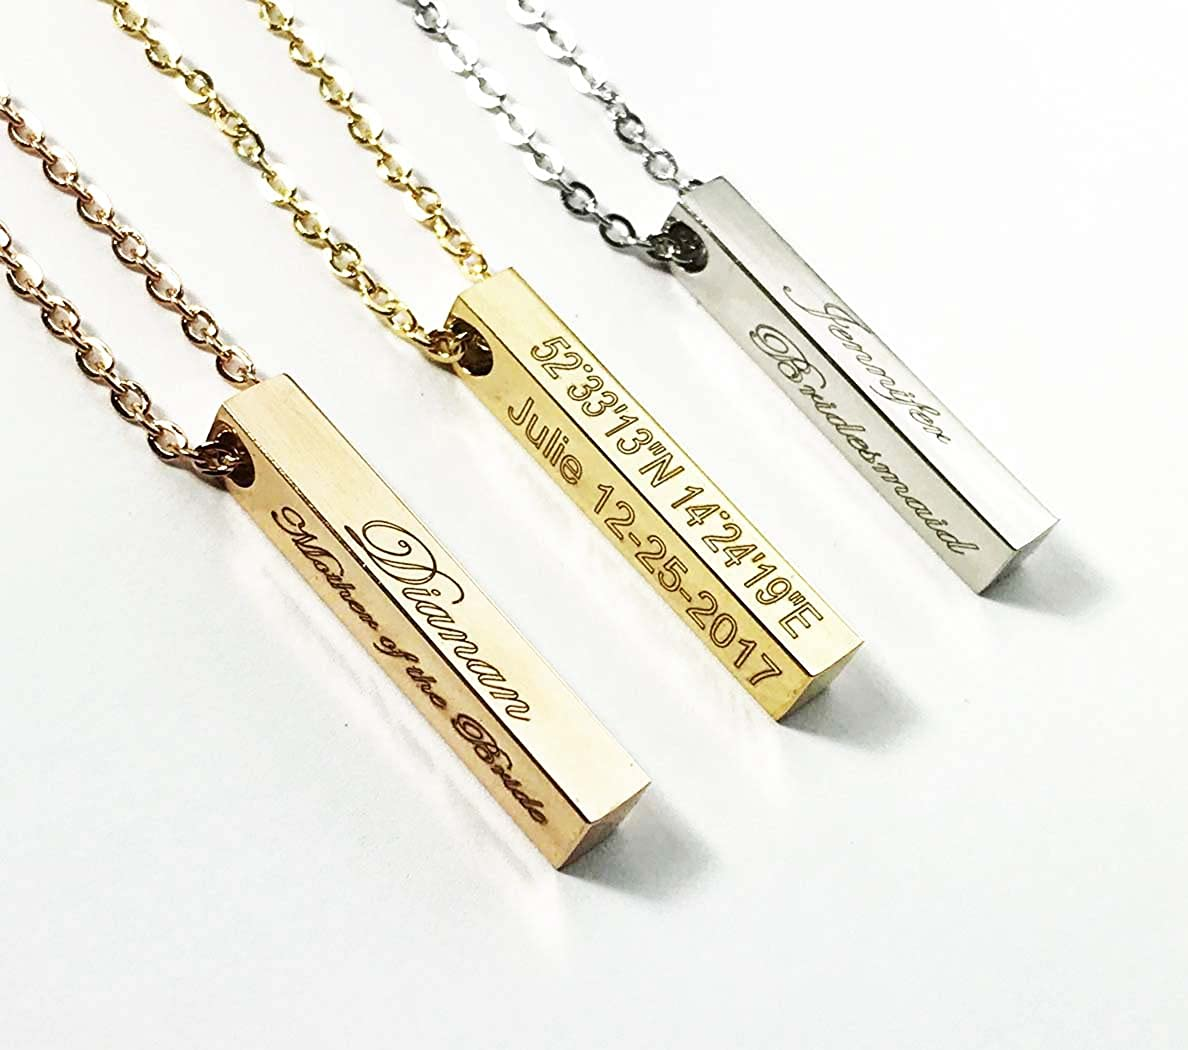 Minimalist Jewelry Bridesmaid, Anniversary gift,Custom name, Inspirational, Coordinates Vertical Bar Necklace -Engraved Rose Gold plated Necklace Pendant-4DS